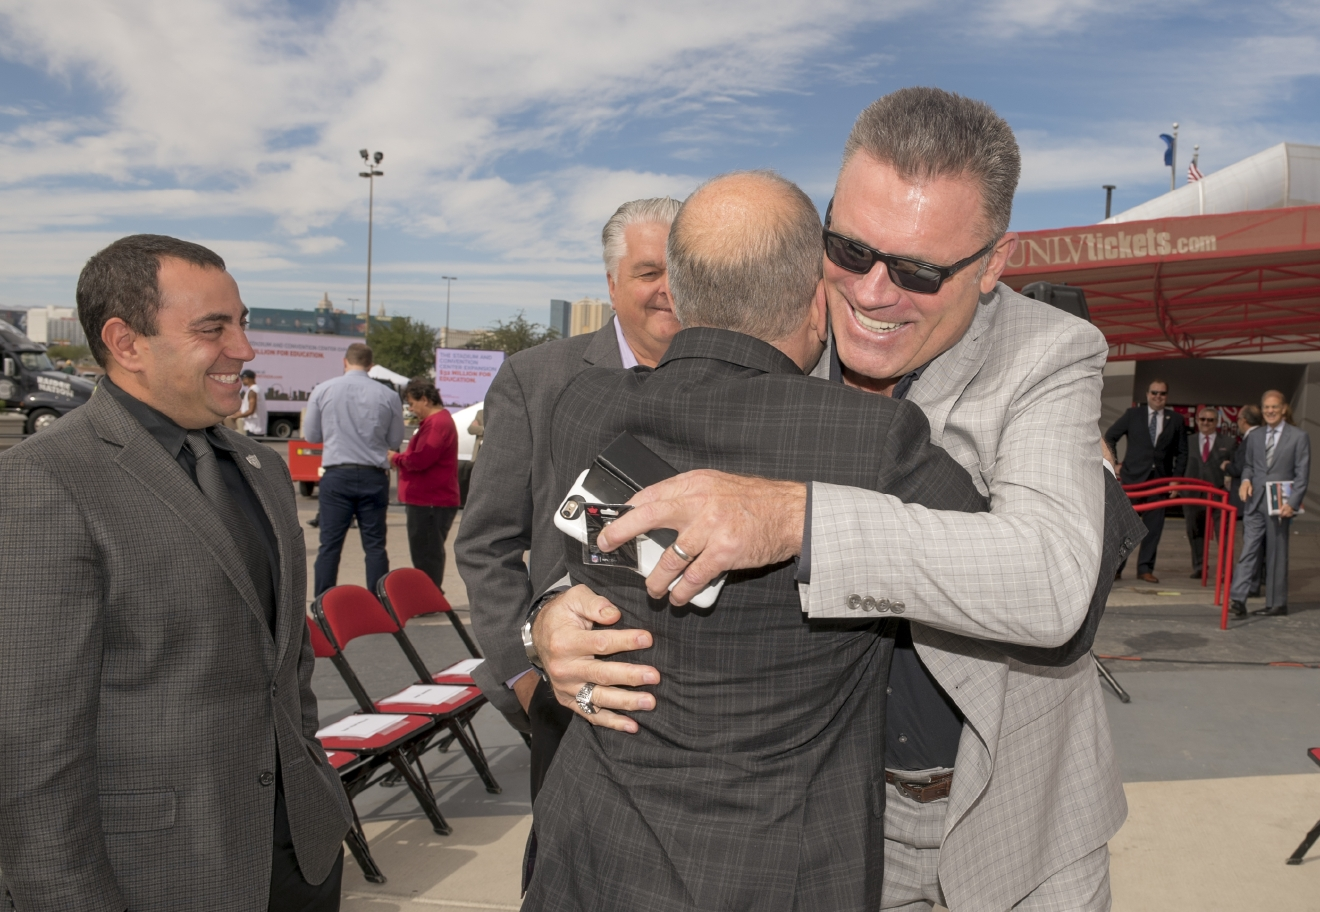 Former Oakland Raider Howie Long, right, embraces Oakland Raiders President Marc Badain as they meet before a coalition of gaming and community leaders called Win Win Nevada gathers to announce the support for immediate legislative approval of the Las Vegas Convention Center expansion and a new football stadium, both unanimously approved by the Governor's Southern Nevada Tourism Infrastructure Committee, at the Thomas & Mack arena at UNLV on Monday, Oct. 3. 2016. (Mark Damon/Las Vegas News Bureau)